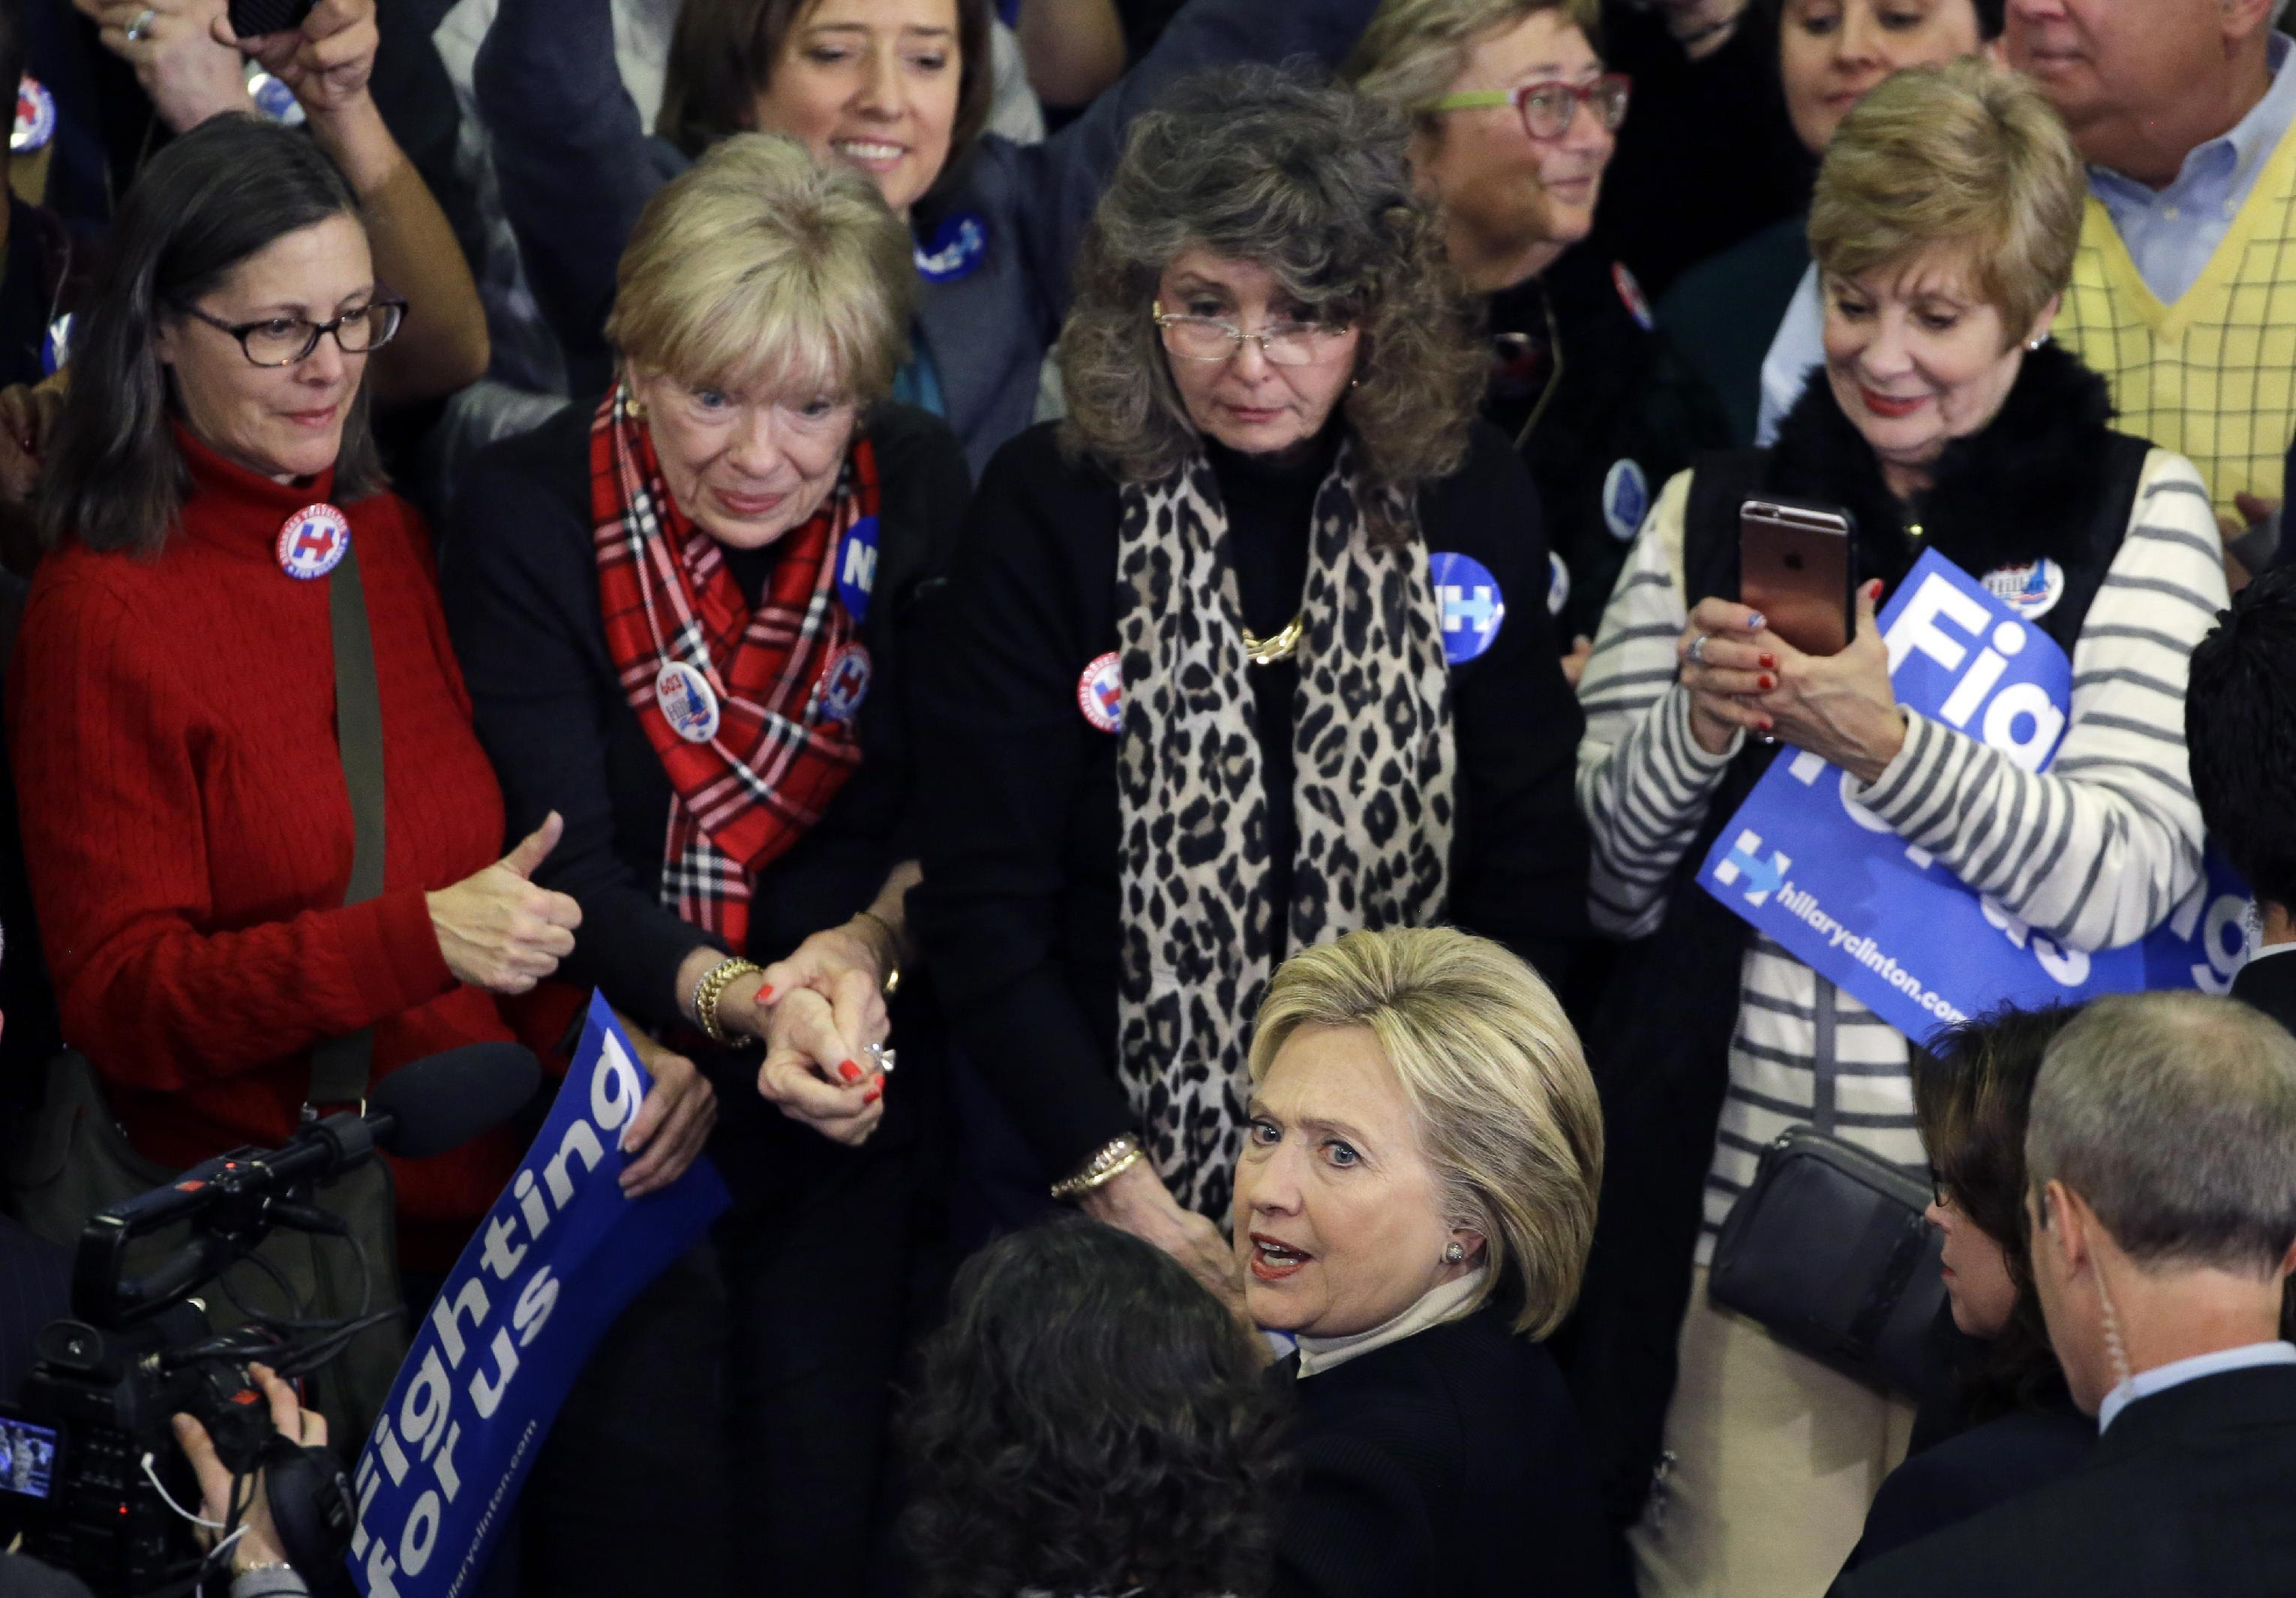 Clinton struggles to win over younger women